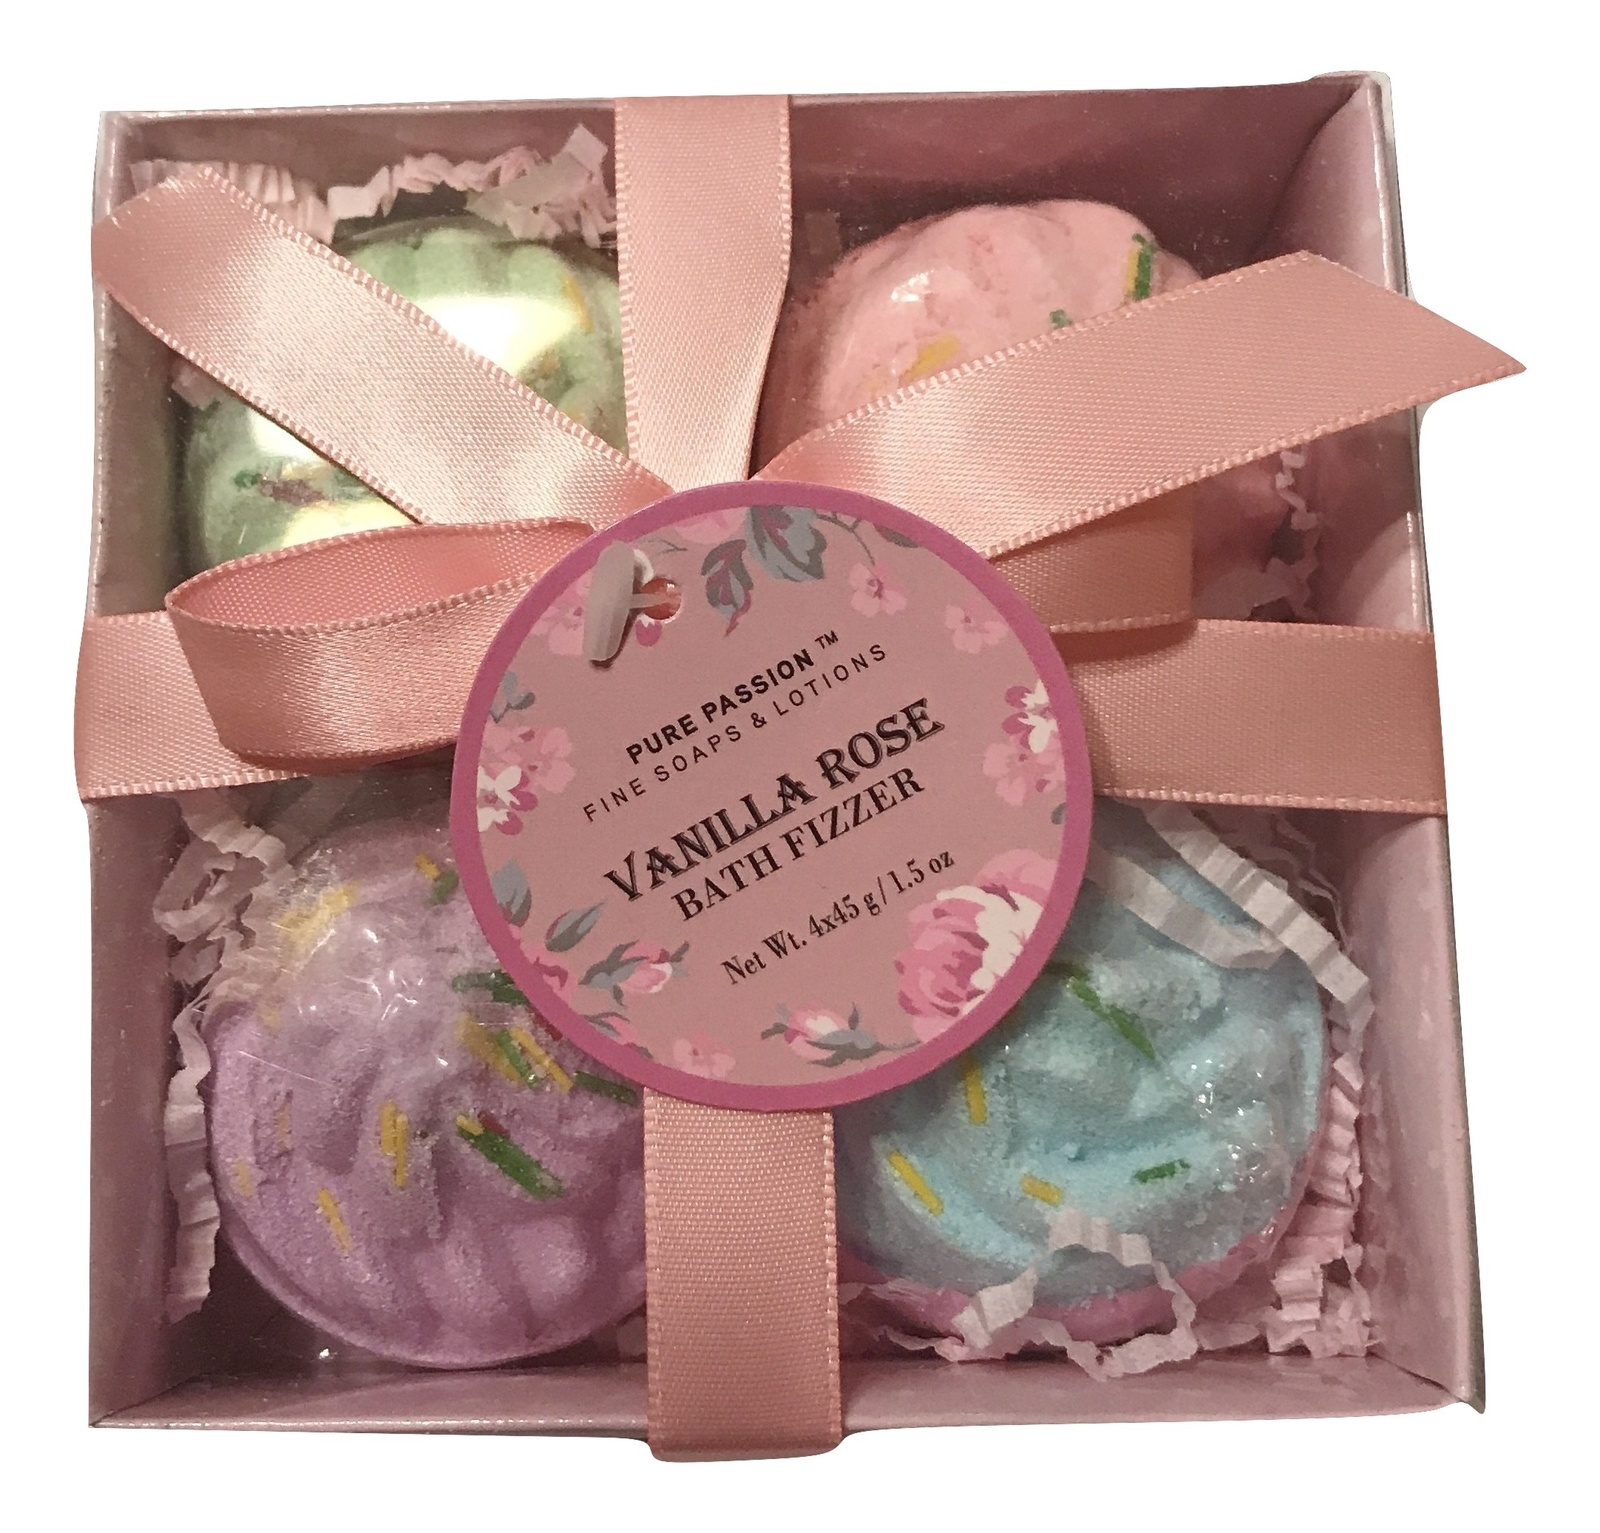 Pure Passion Vanilla Rose Bath Fizzer Gift and 50 similar items